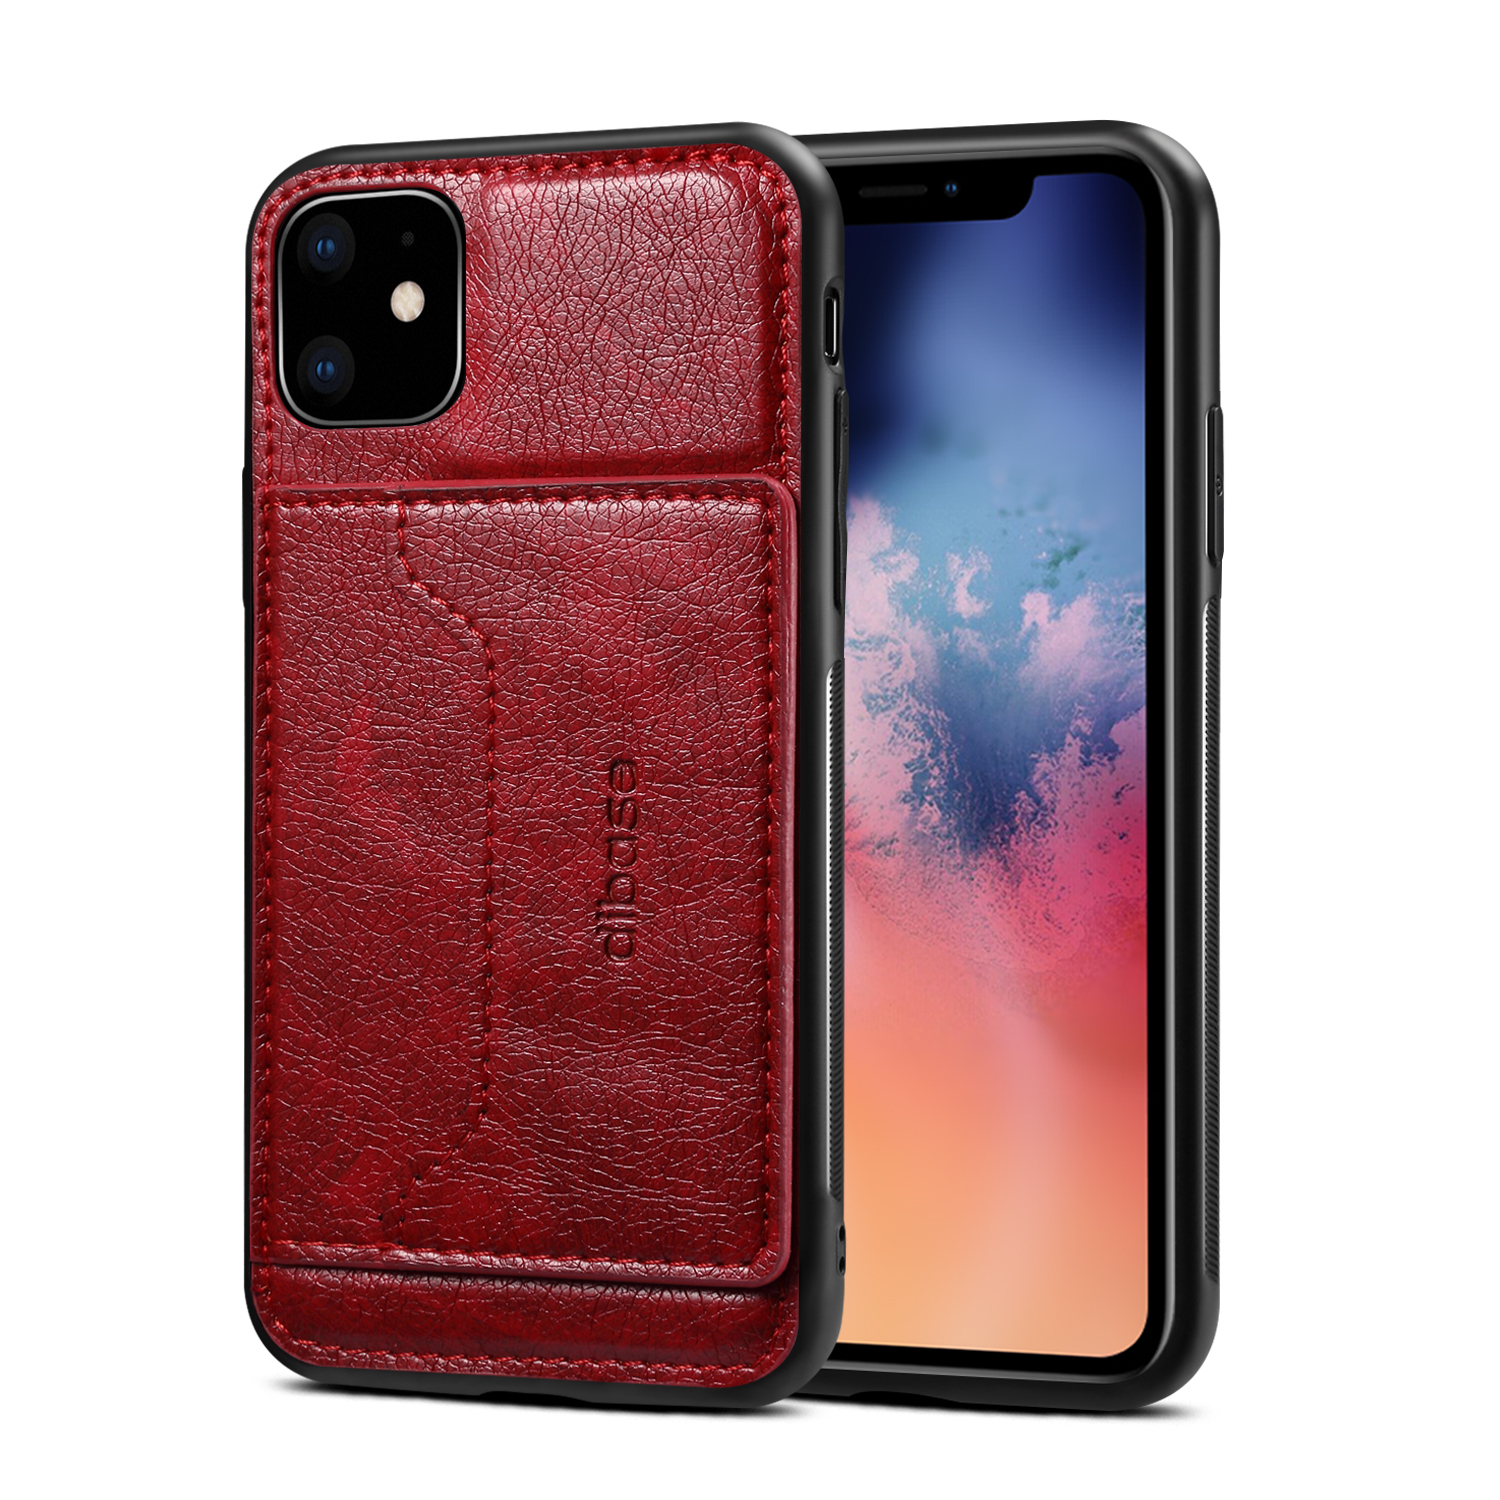 For iPhone 11/11 Pro/11 Pro Max Cellphone Smart Shell 2-in-1 Textured PU Leather Shock-Absorption Anti-Fall Card Holder Stand Function Phone Cover red